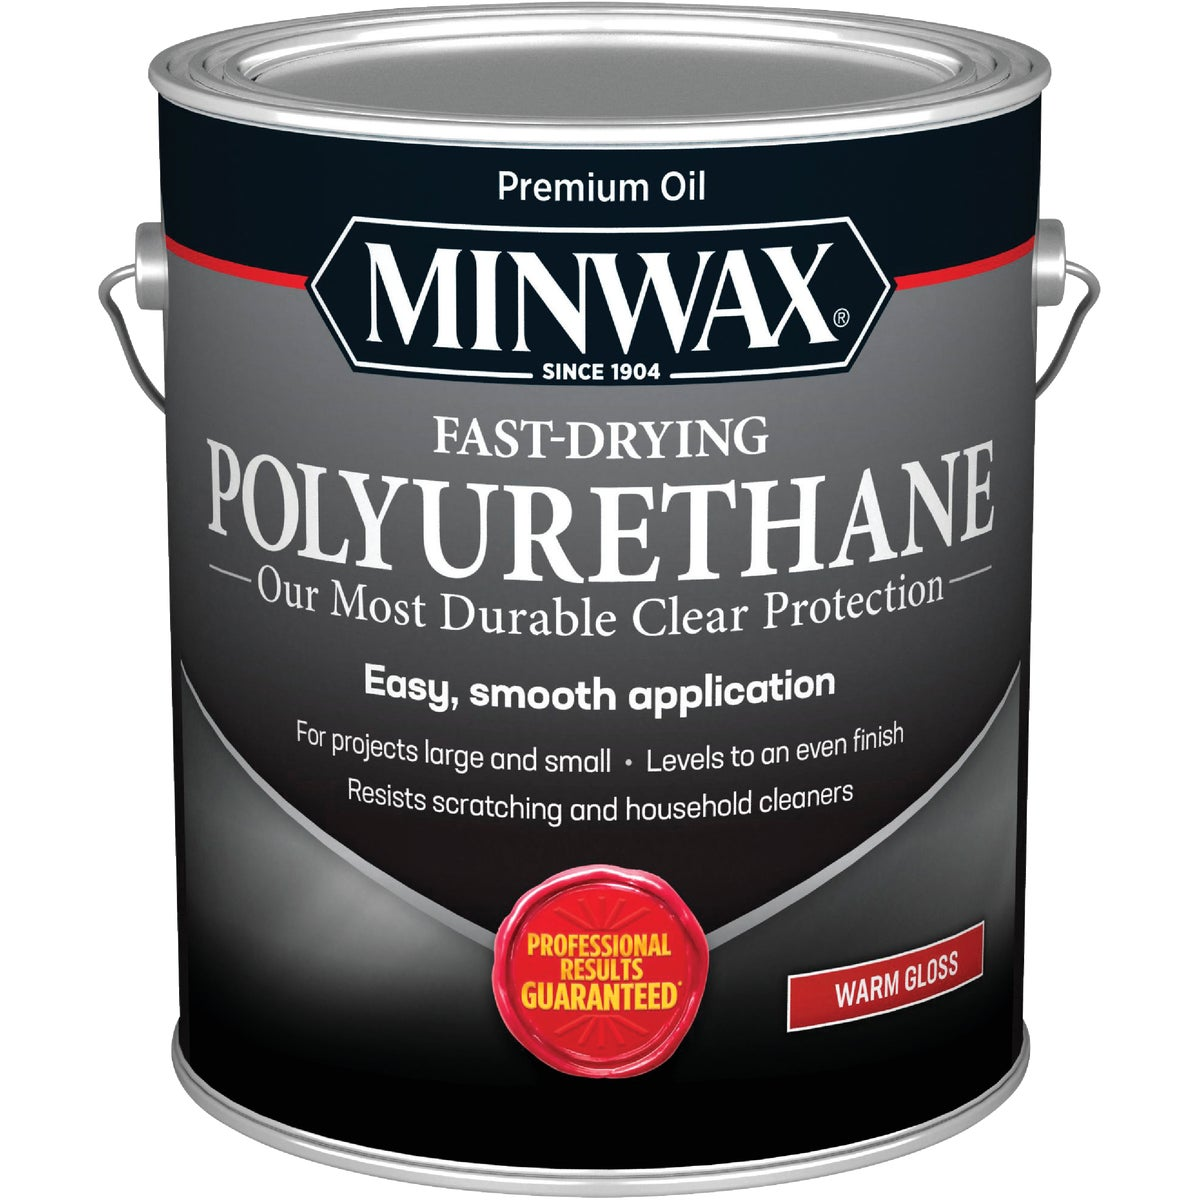 S/G H-BUILD POLYURETHANE - 710910000 by Minwax Company